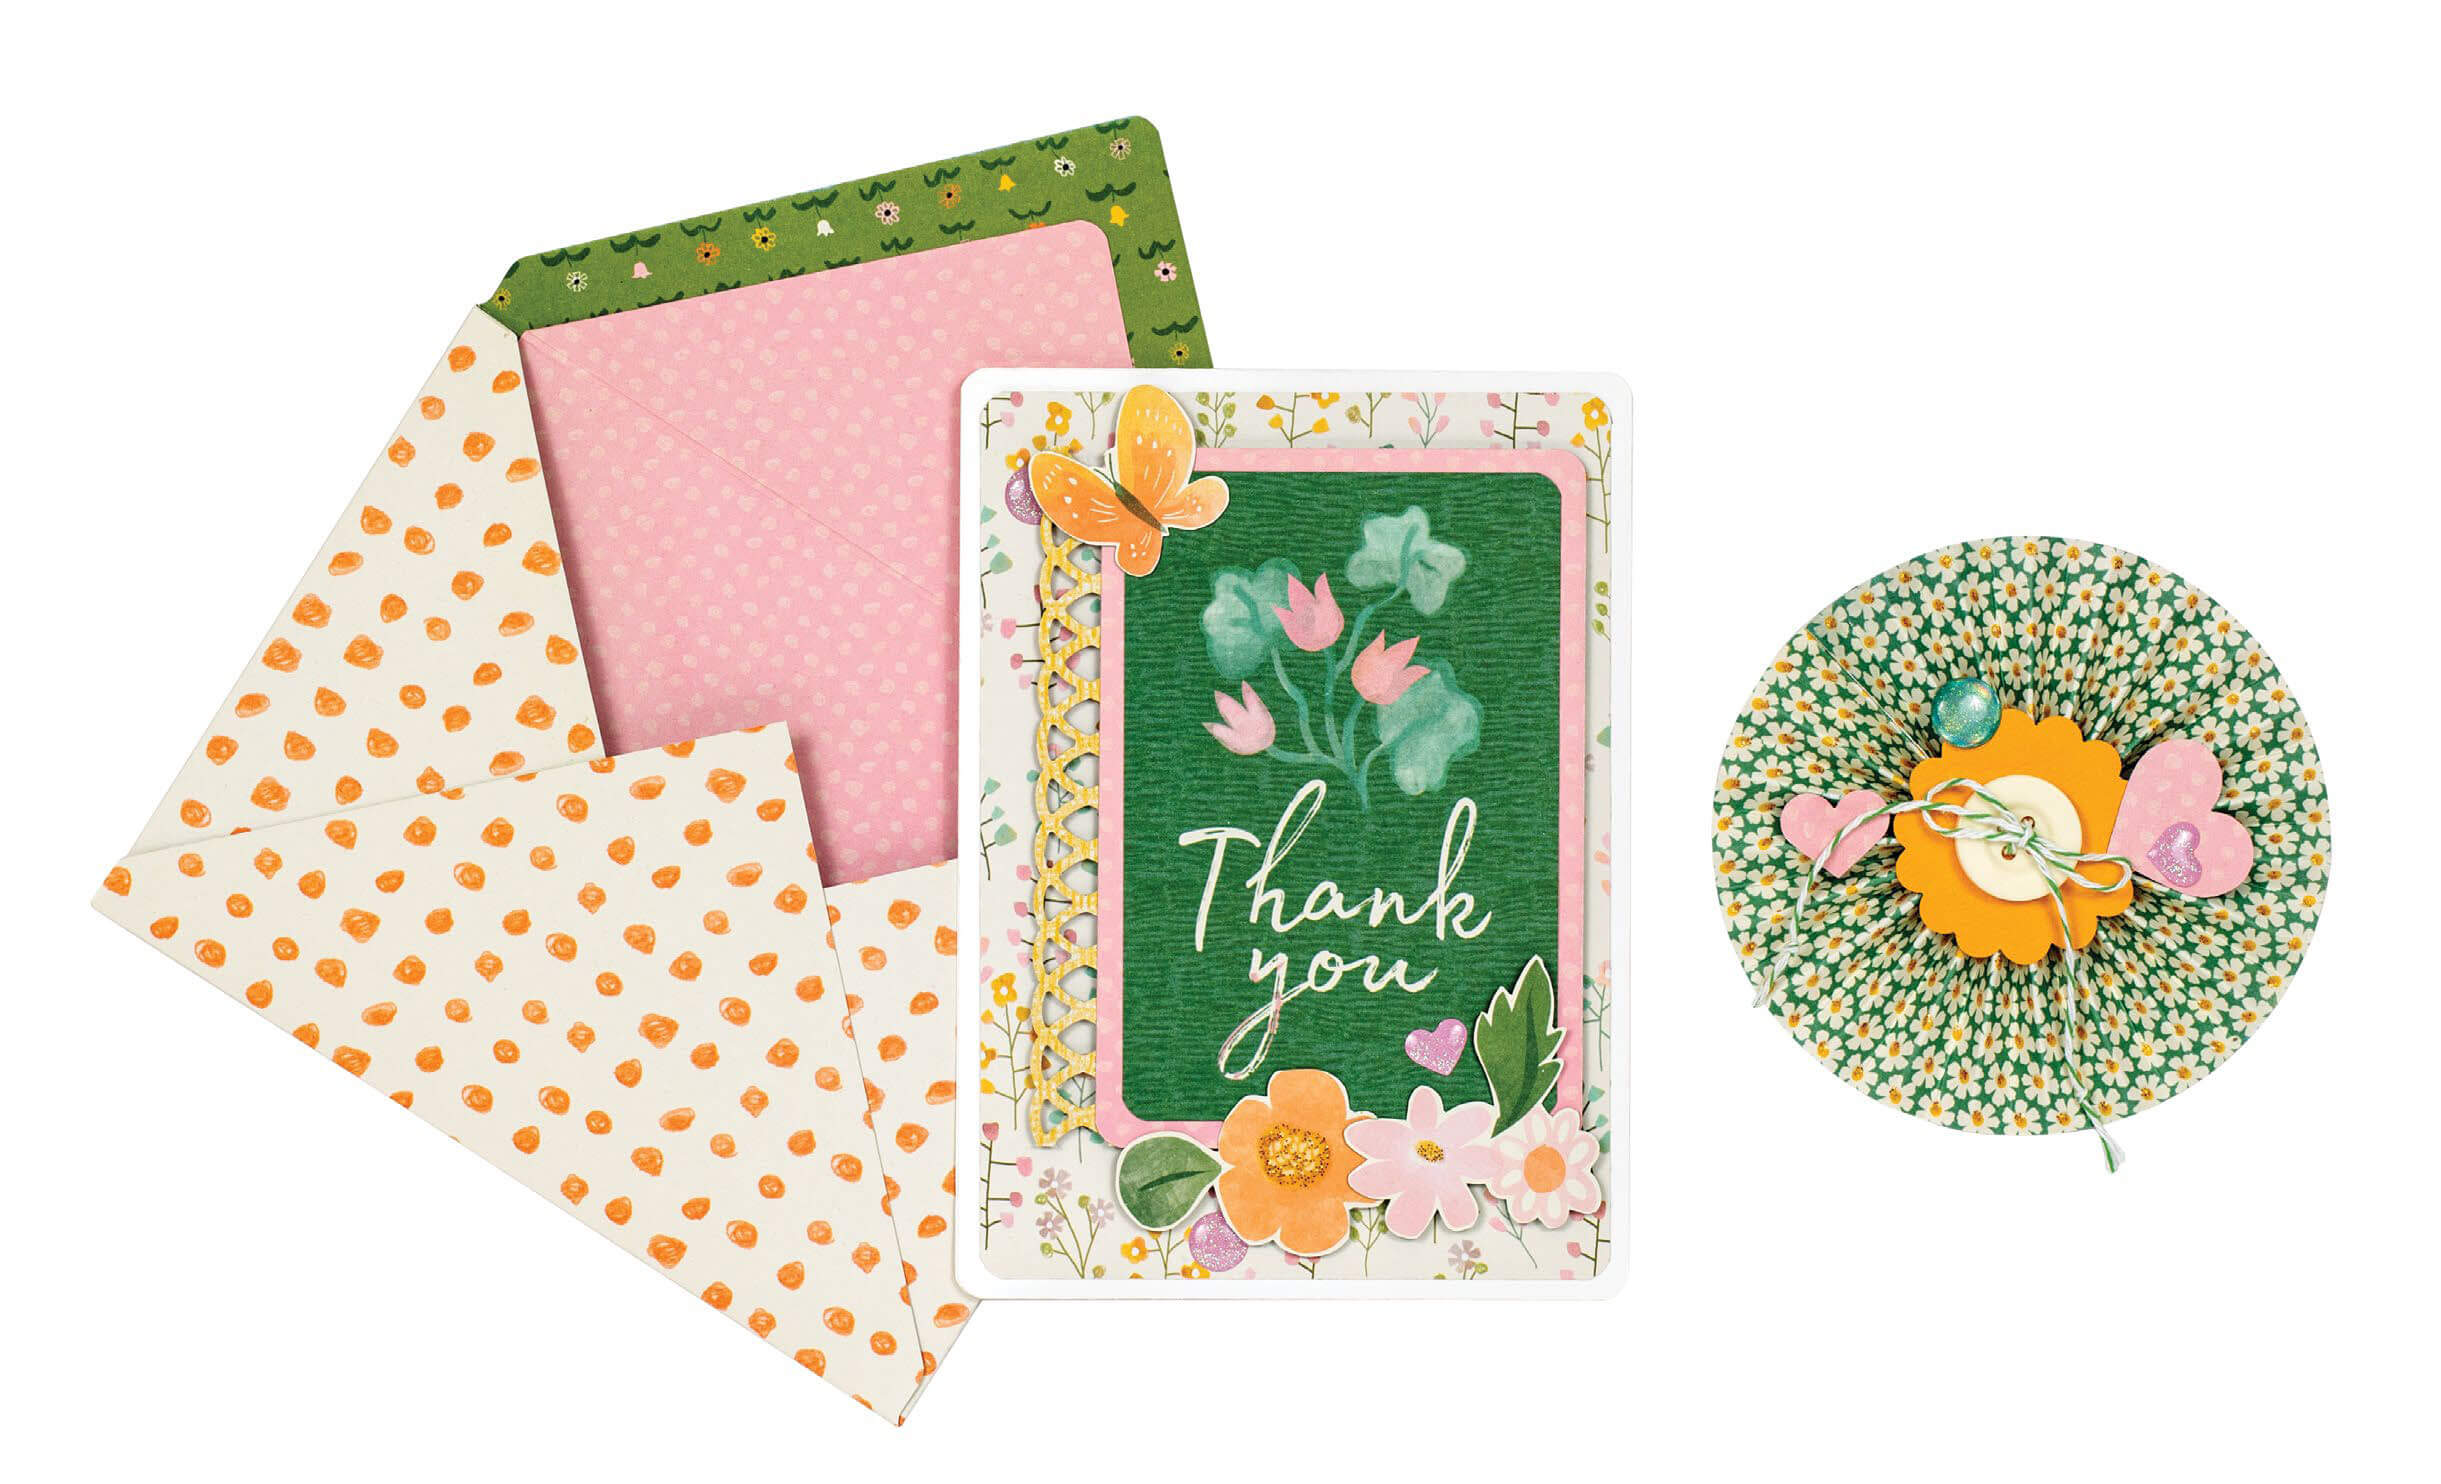 Scrapbook & Cards Today - Spring 2020 - Spring Celebration Ensemble by Meghann Andrew